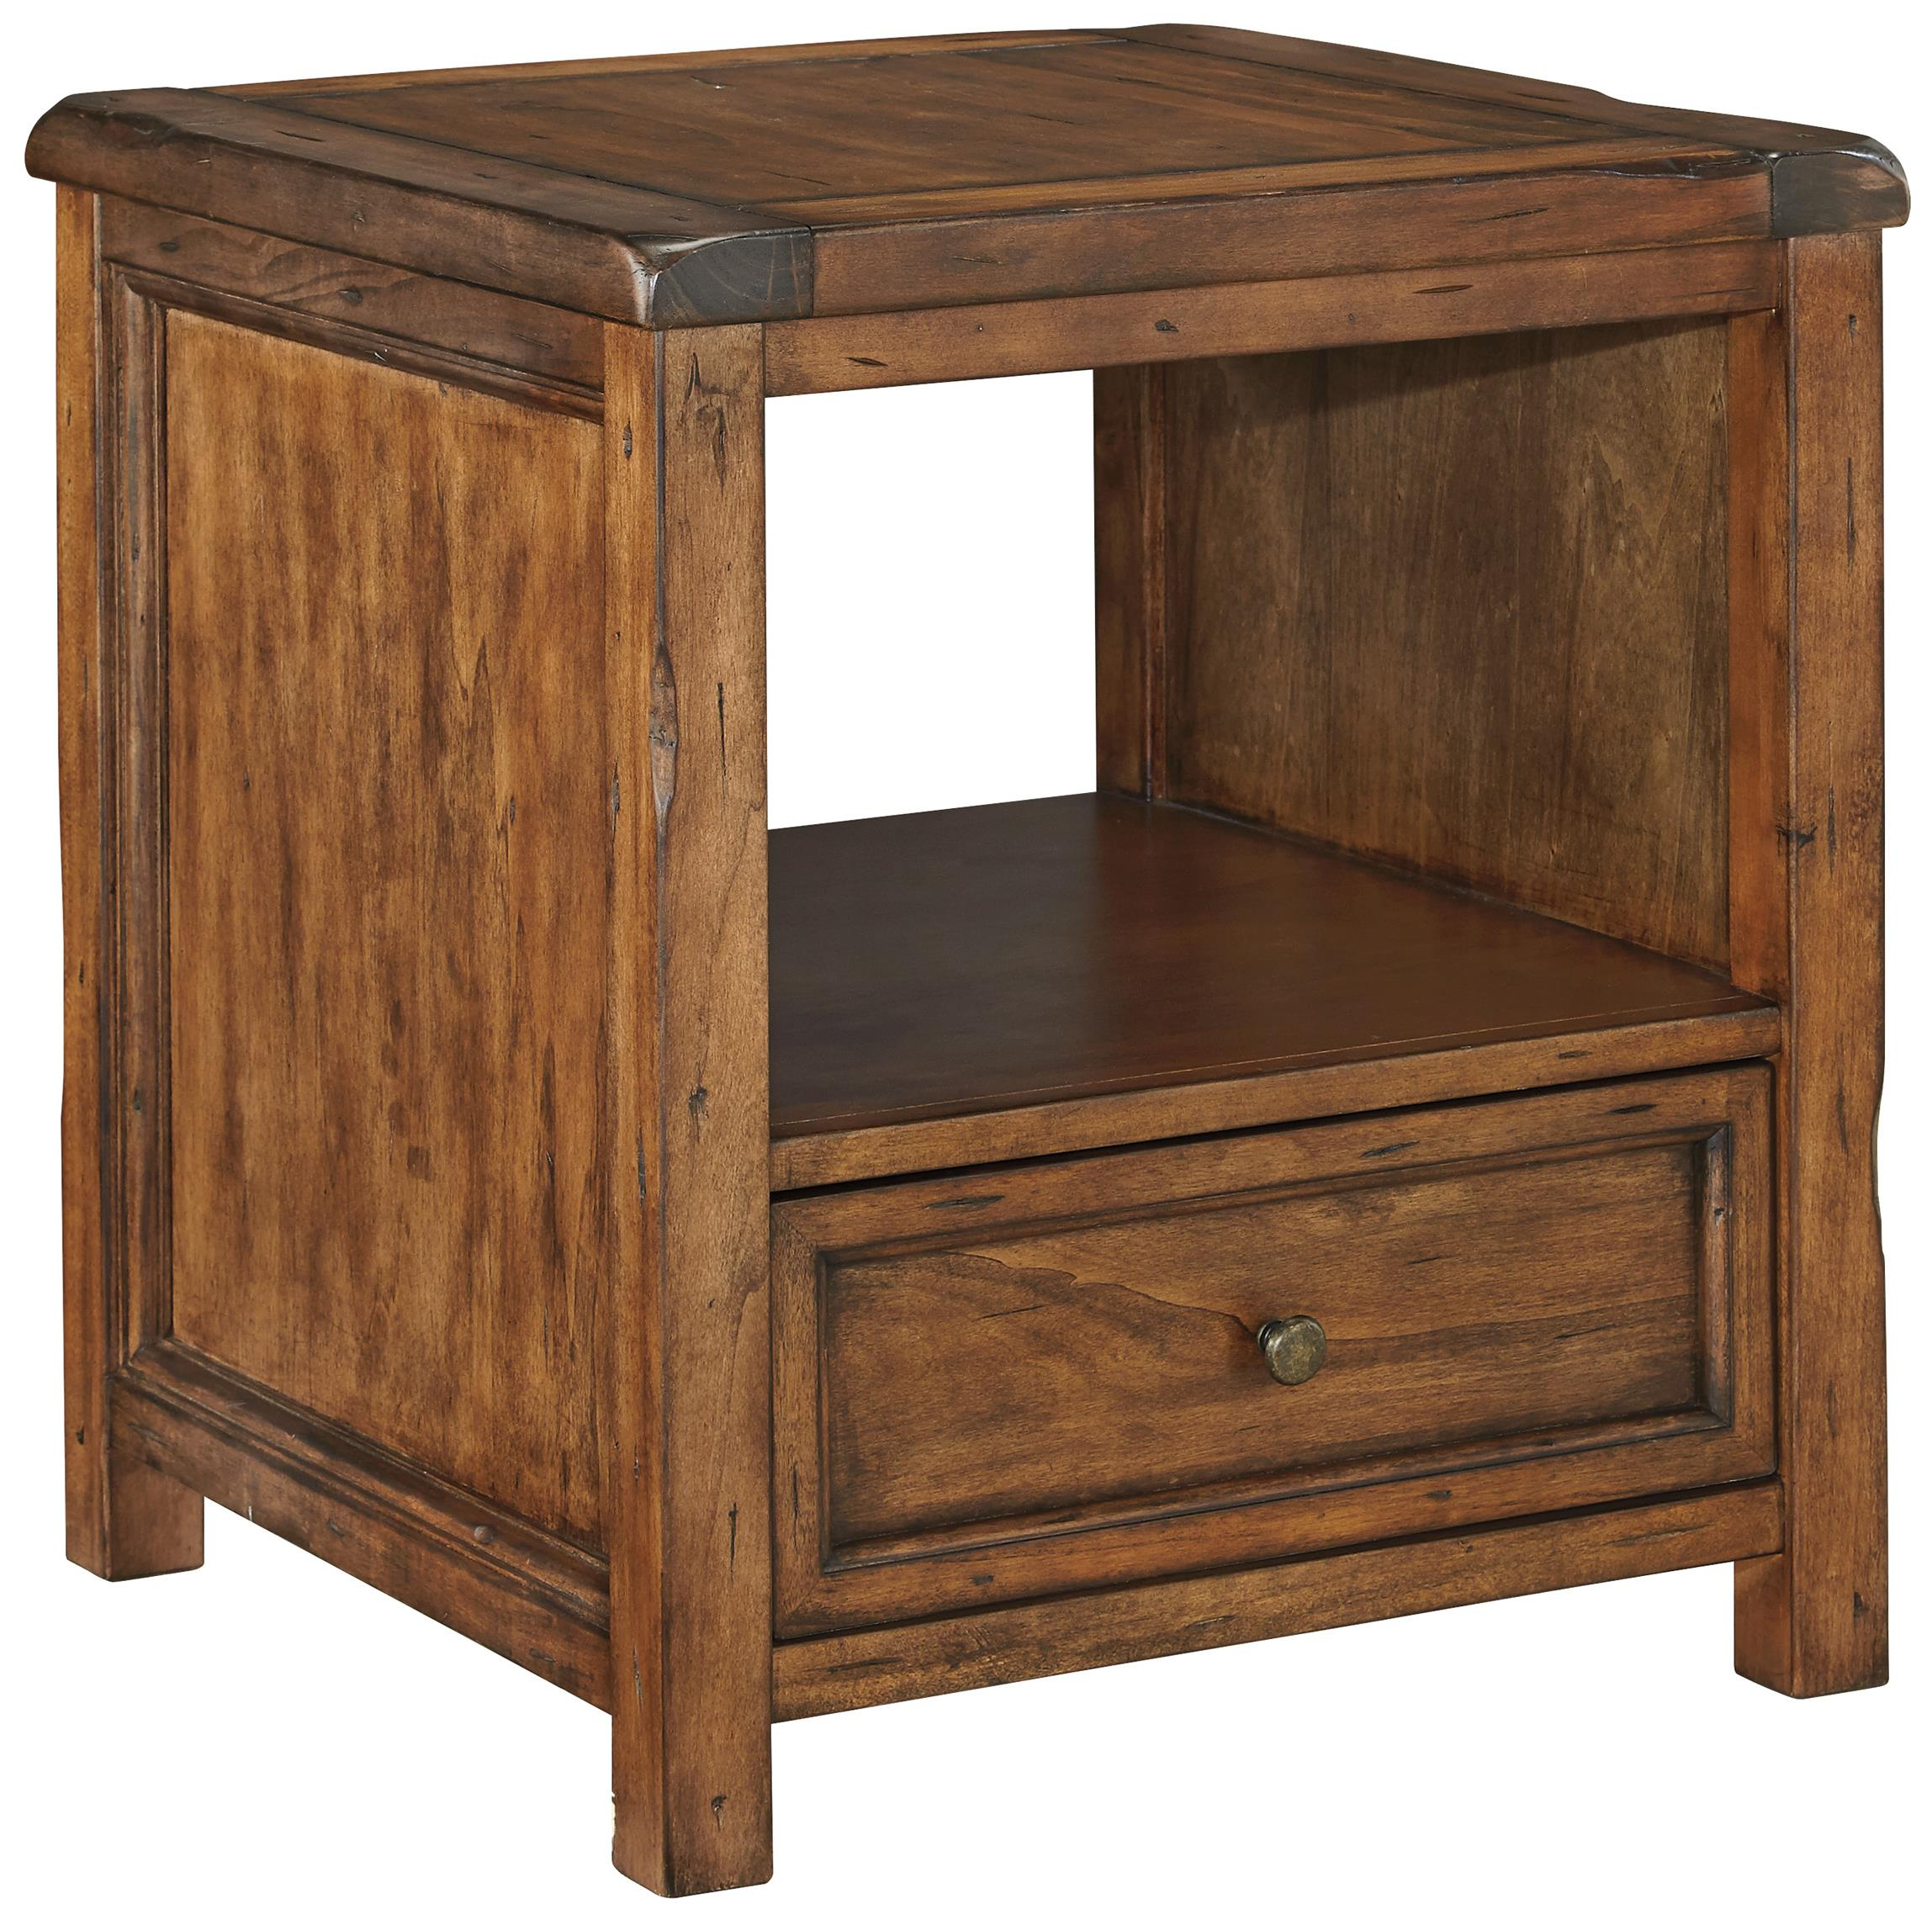 Rustic Wood End Table Tamonie Rustic Square End Table With Shelf And Drawer By Signature Design By Ashley At Sam Levitz Furniture